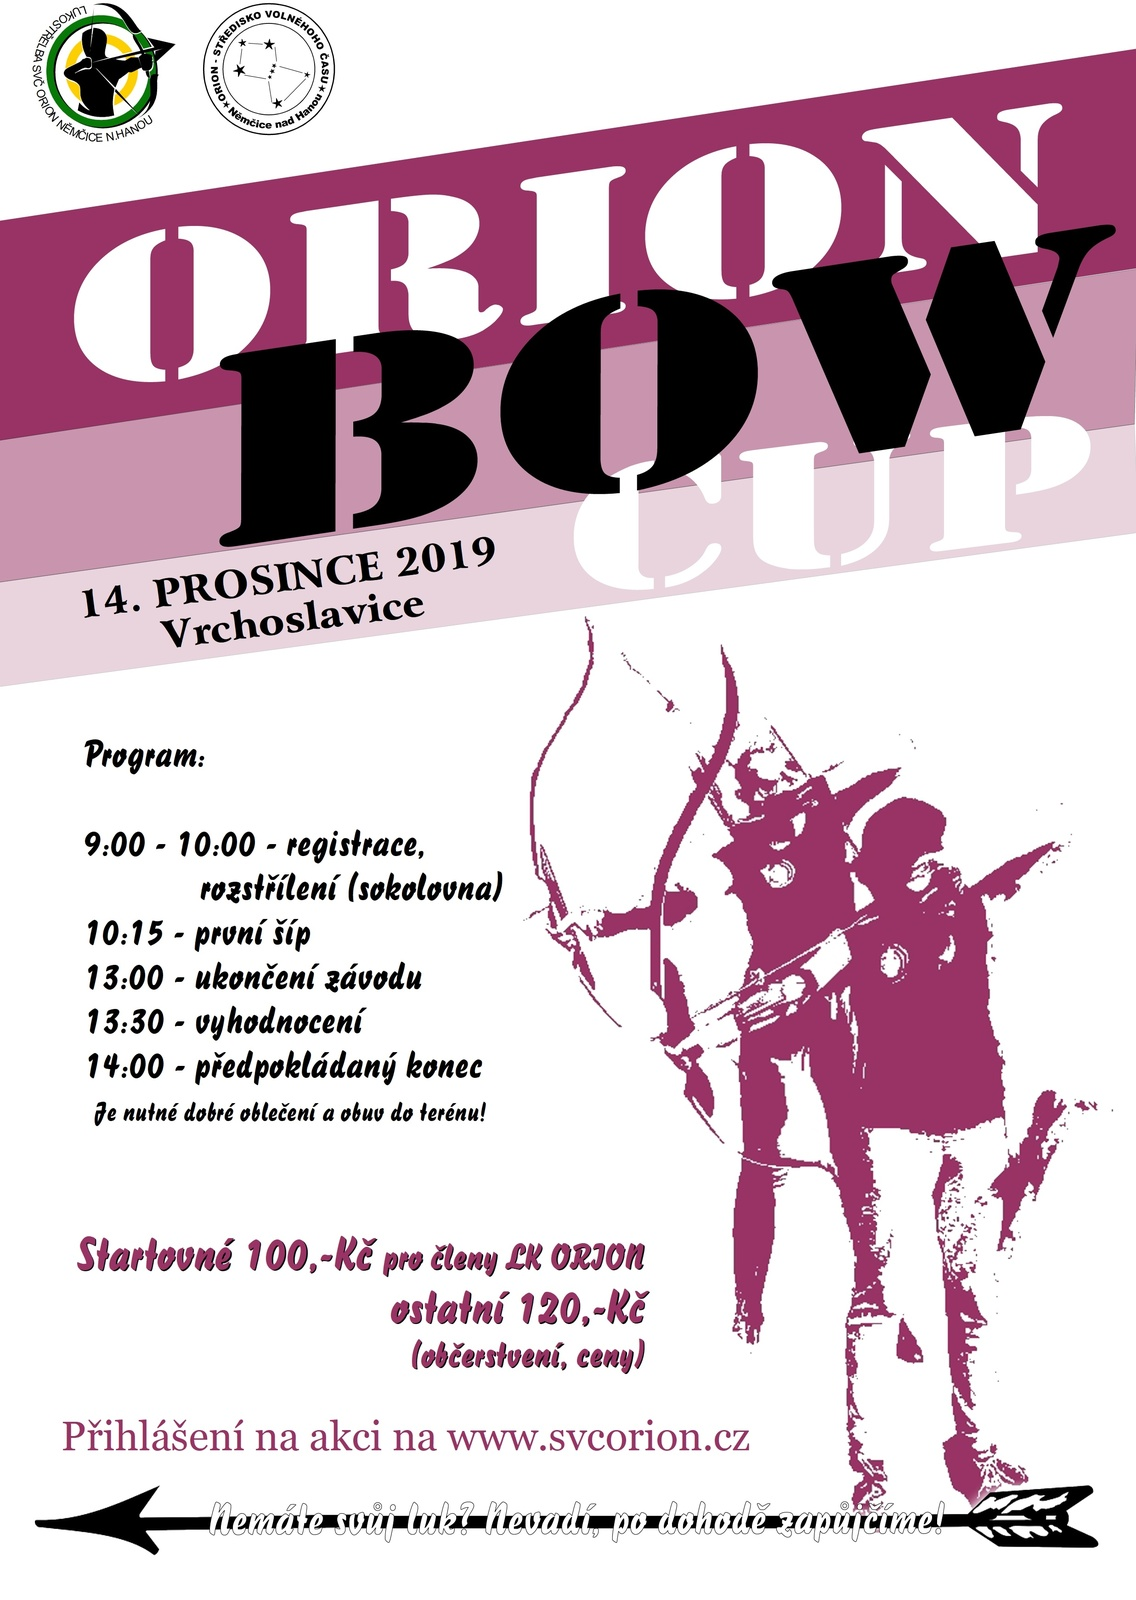 Orion Bow cup 2019-20 1 kolo.jpg